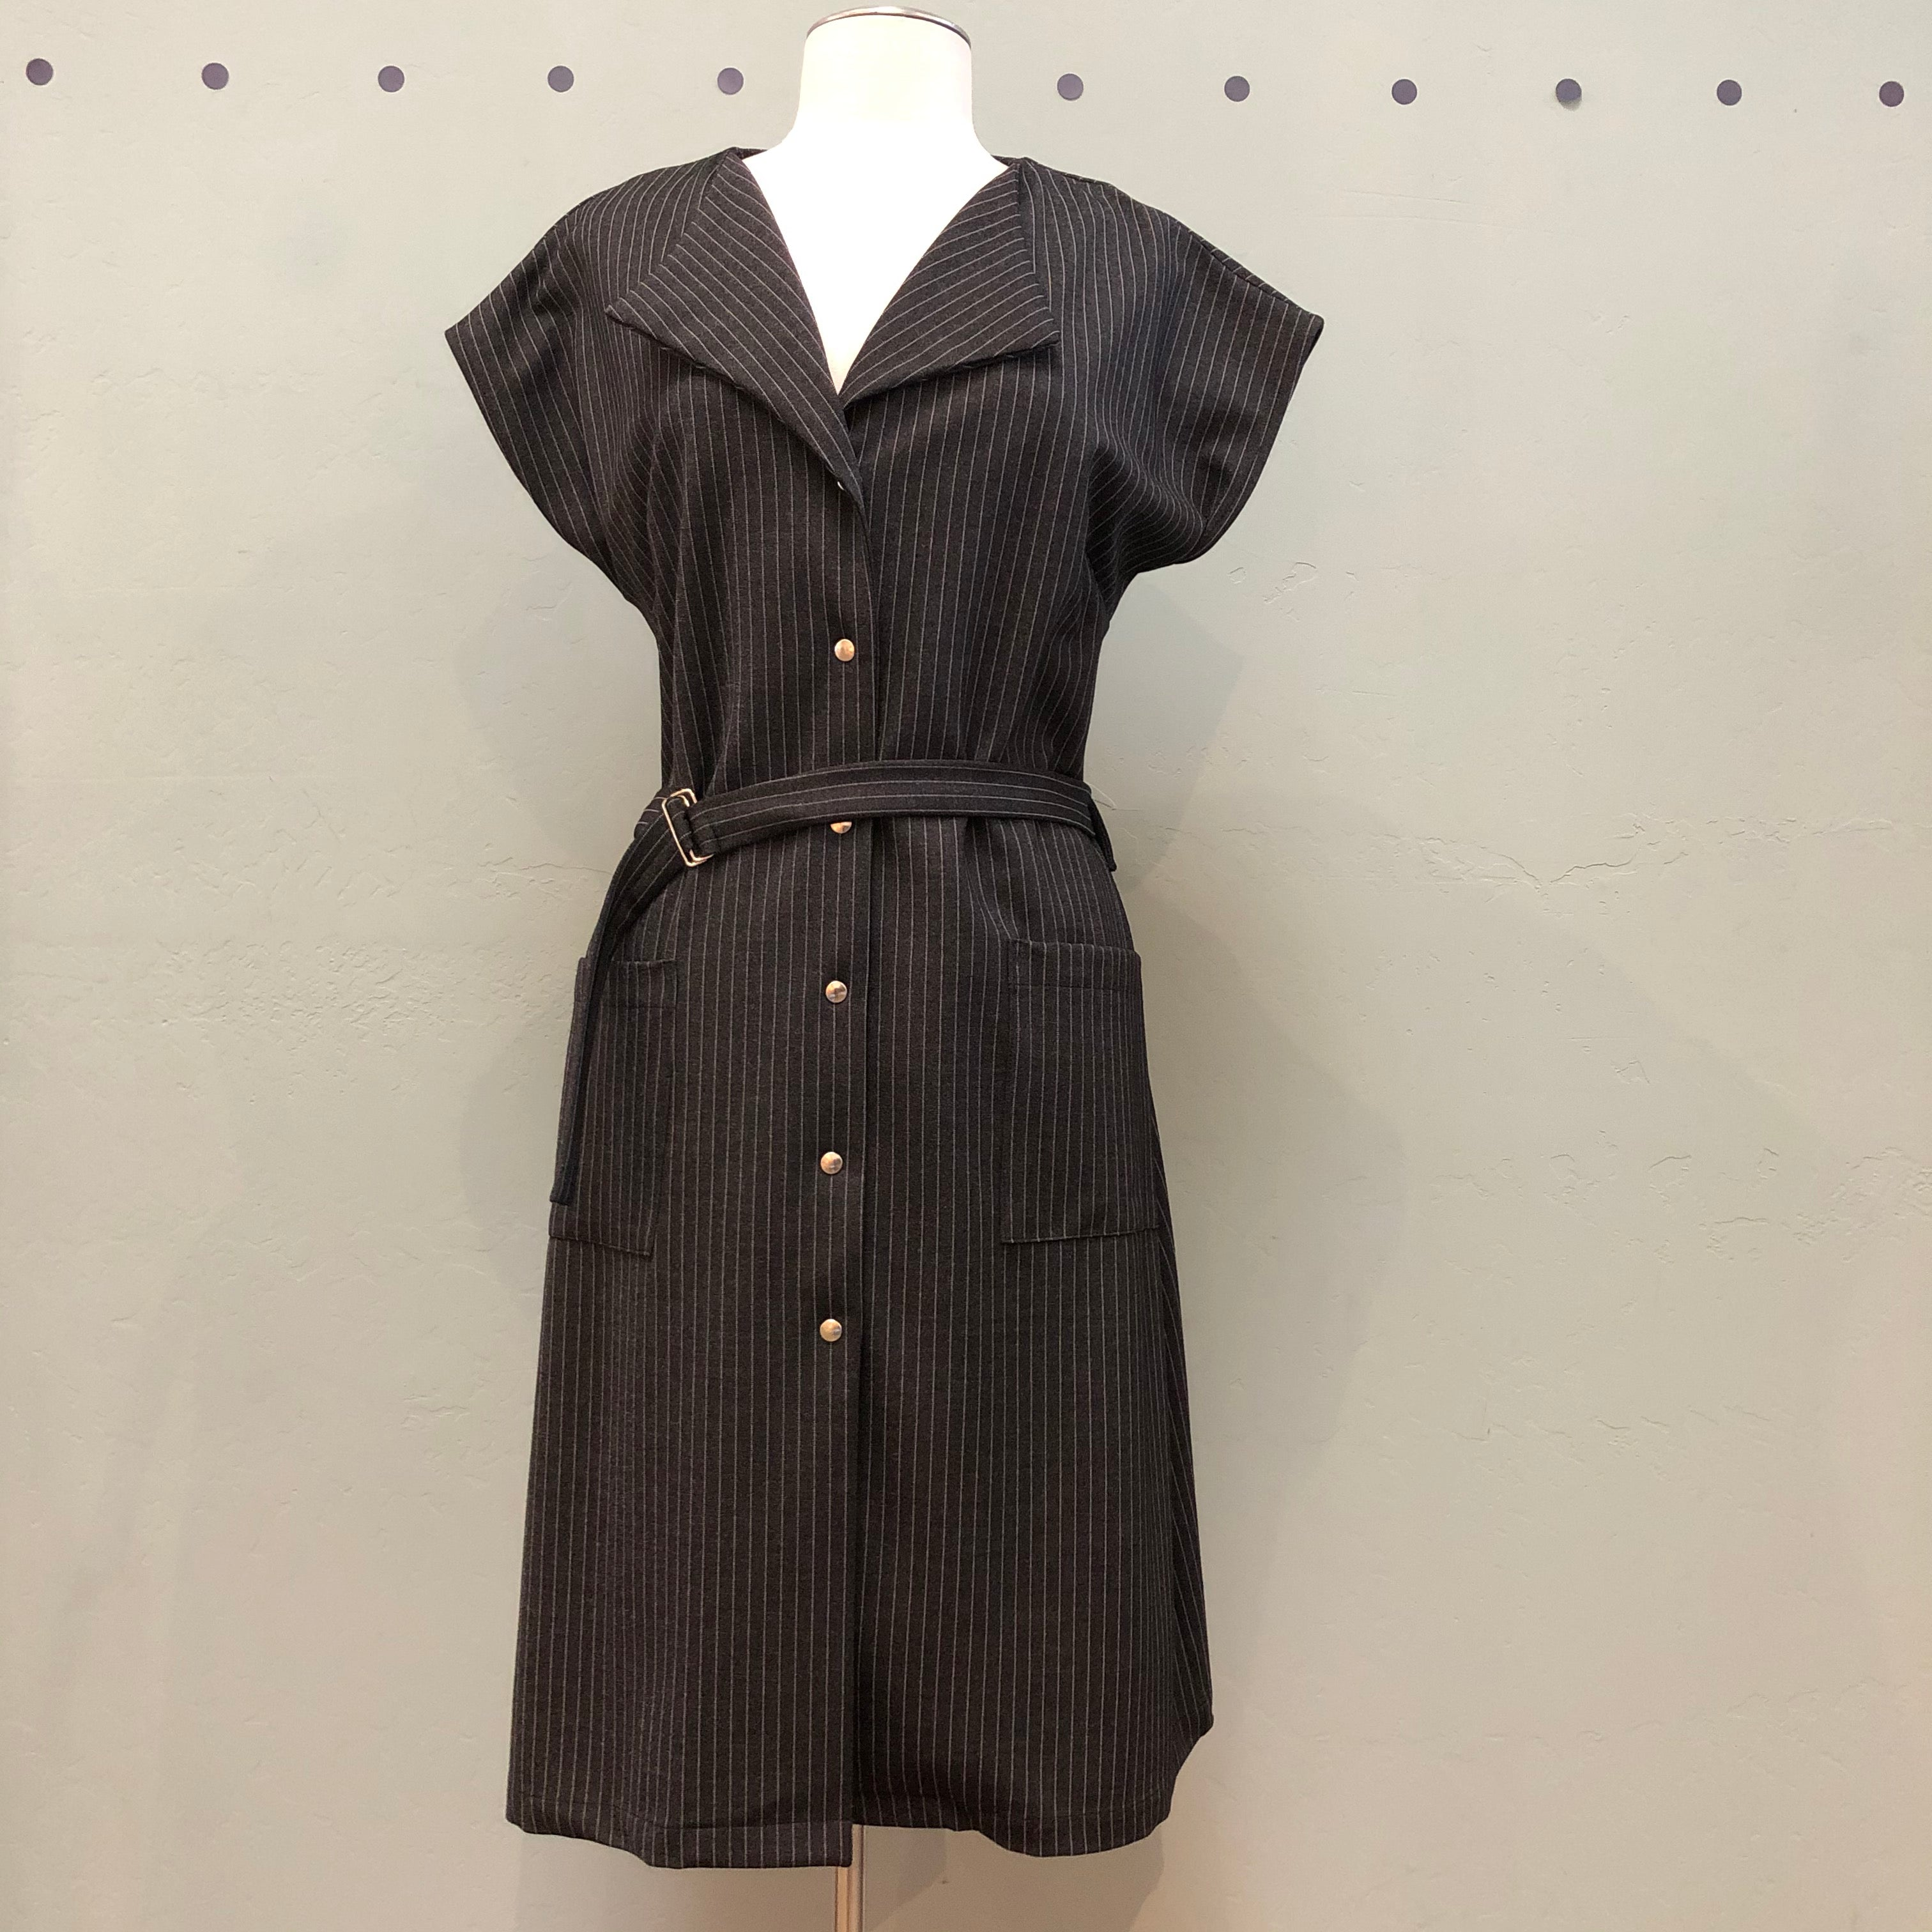 Marigold shirt waist dress with wing collar, short sleeves, belt and patch pockets in a black with white stripe